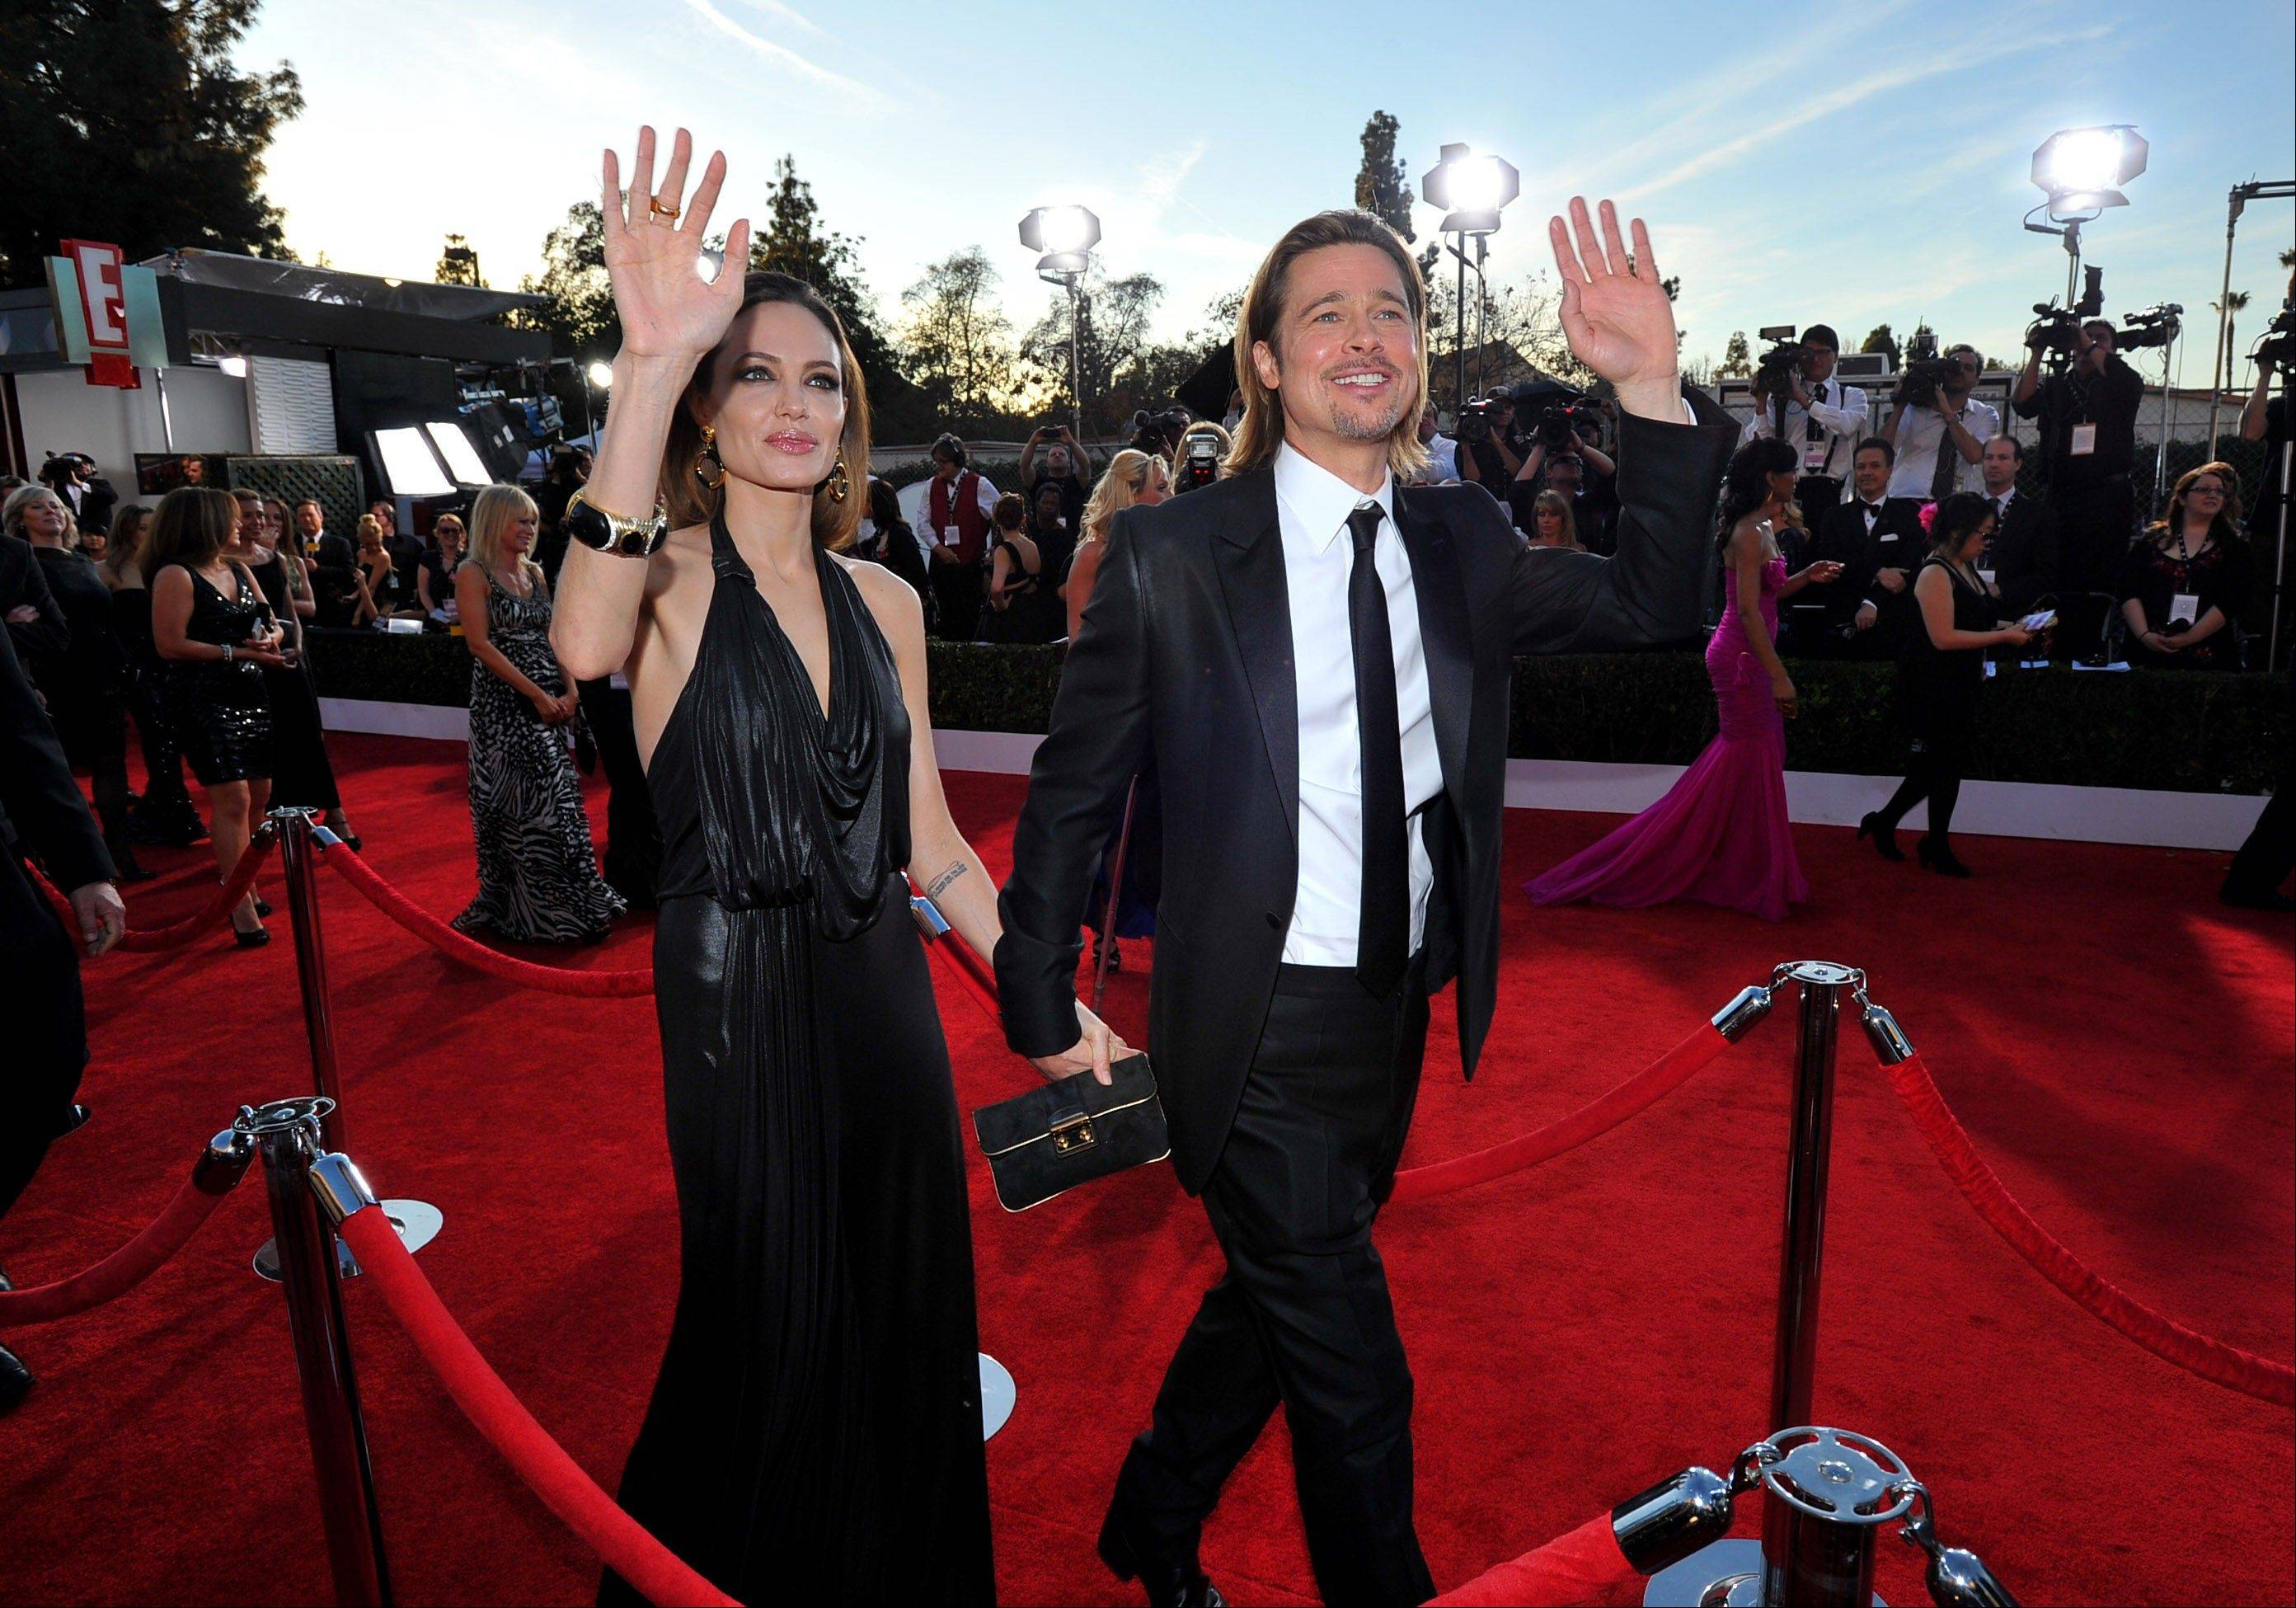 Angelina Jolie and Brad Pitt arrive on the red carpet at the 18th Annual Screen Actors Guild Awards last month in Los Angeles. Their Oscar arrival will be a big deal as well.